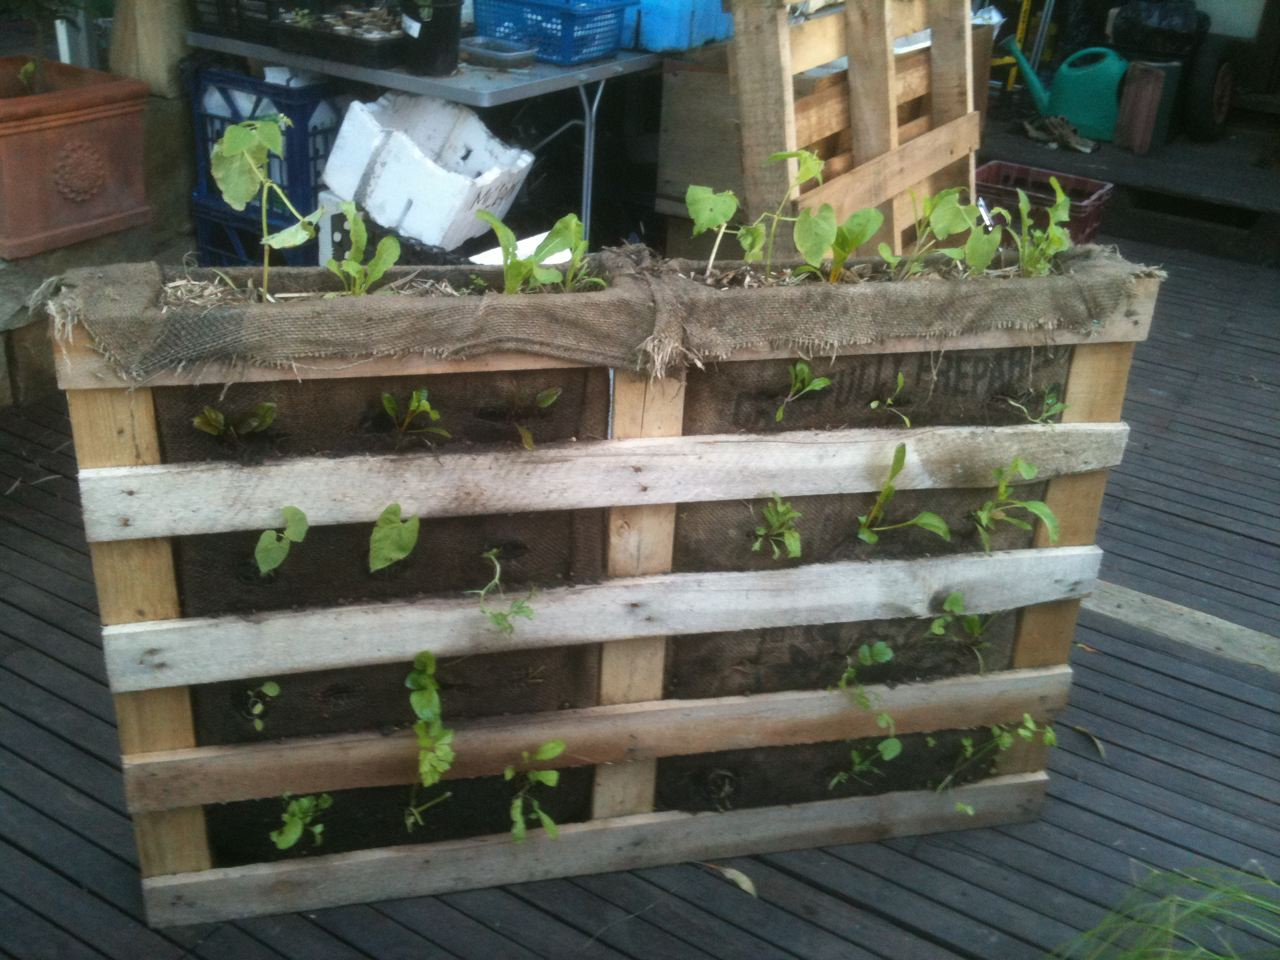 Timber pallet vertical garden with soil in sacks